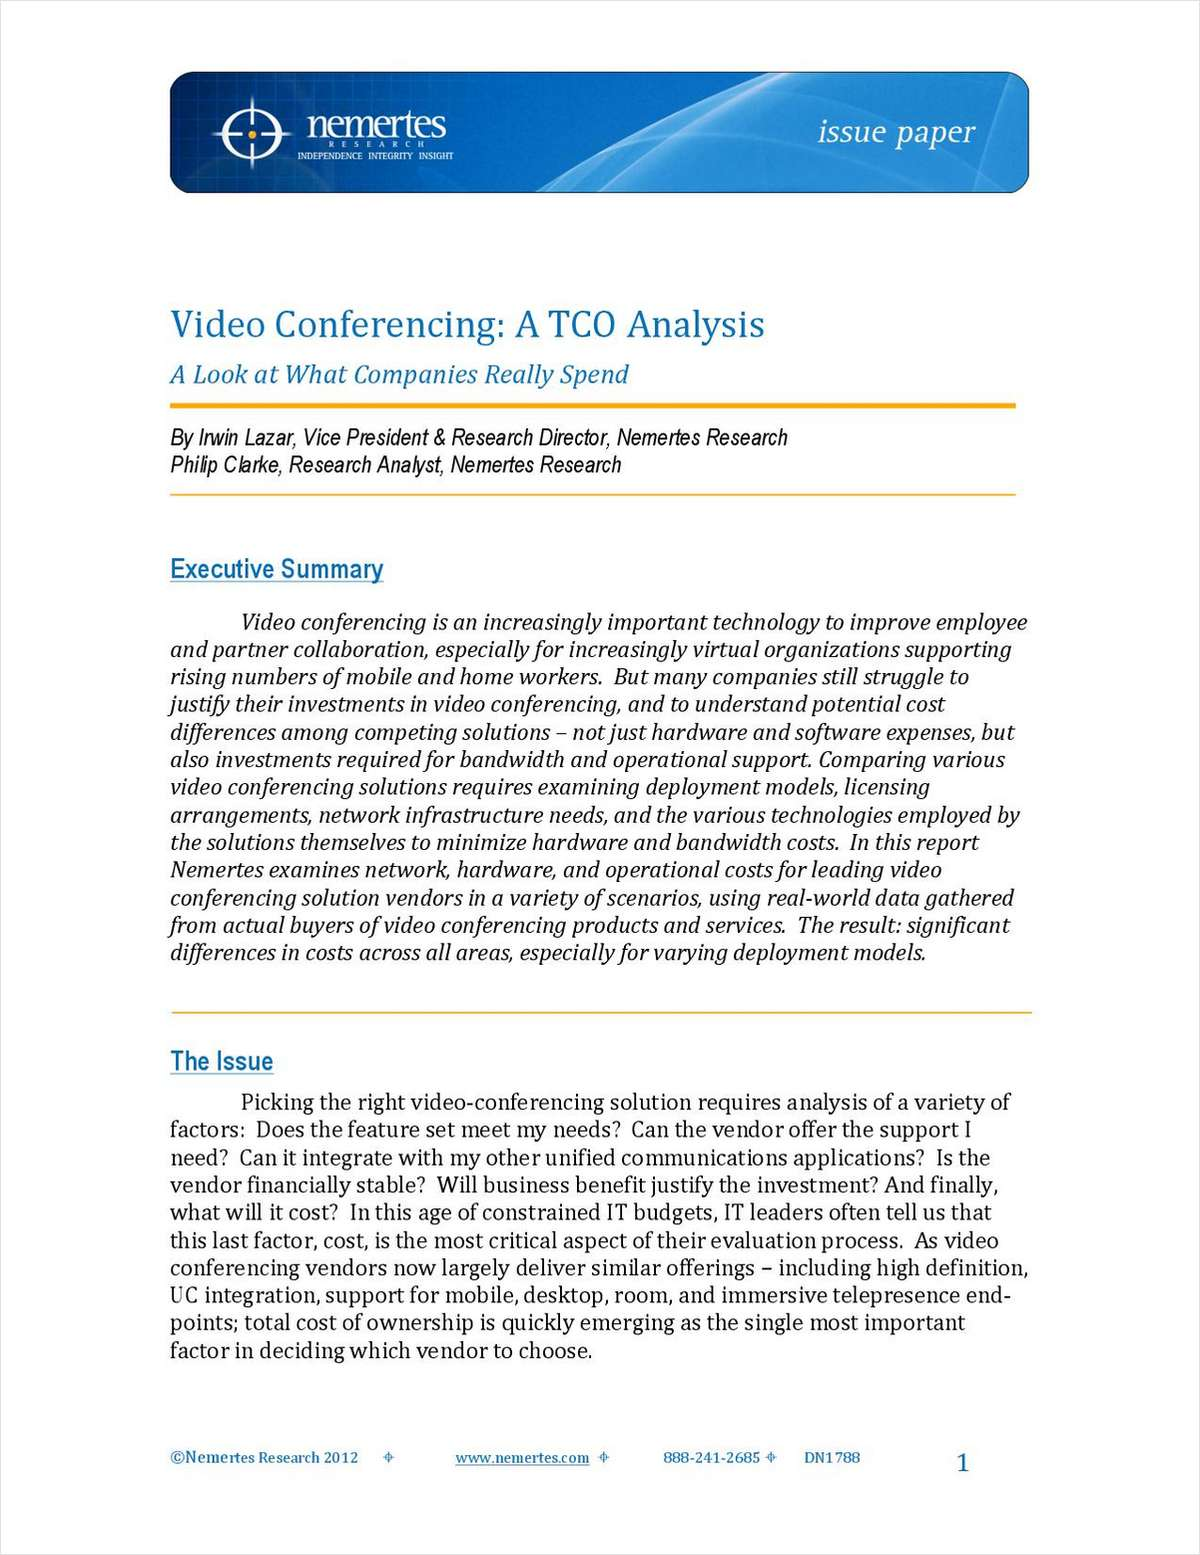 Video Conferencing, A TCO Analysis: A Look at What Companies Really Spend